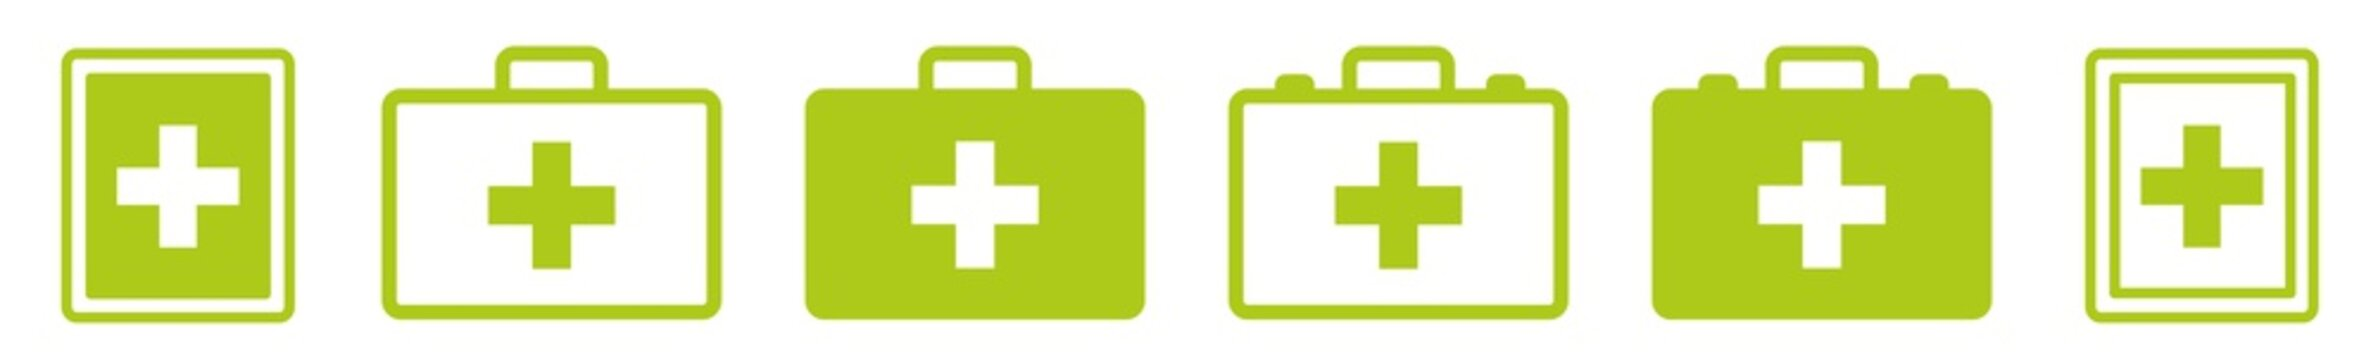 First Aid Kit Icon Green | Emergency Box Illustration | Medical Help Symbol | Paramedic Bag Logo | Cross Sign | Isolated | Variations